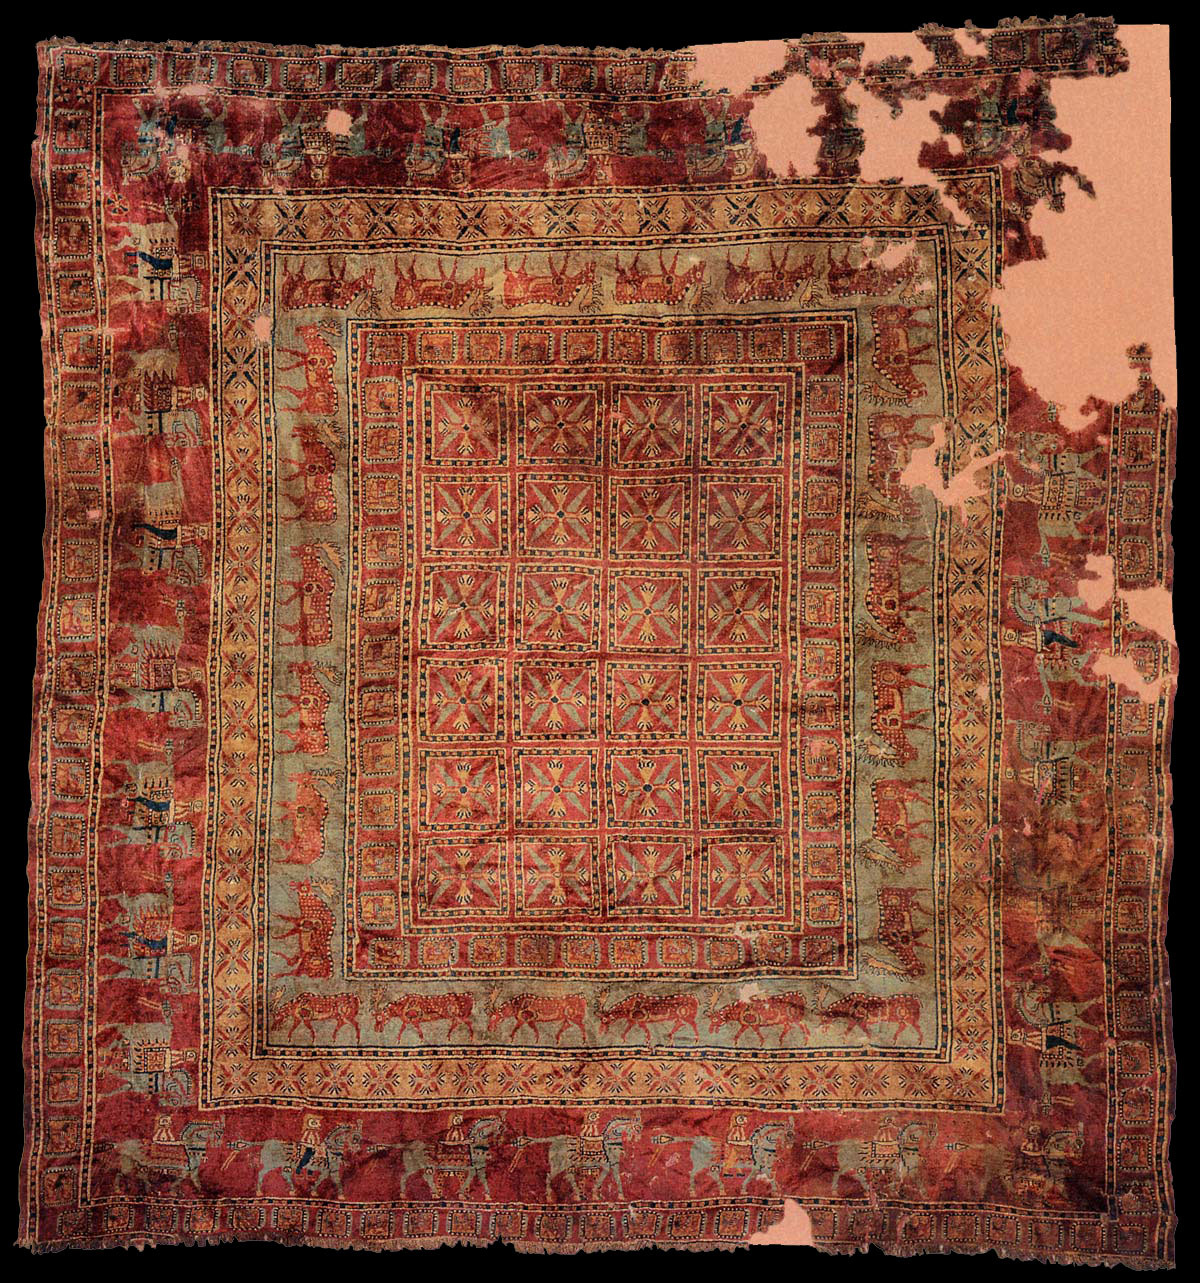 haruenishikawa:  The Pazyryk carpet is named for the Siberian valley in which it was found, in 1949, near Russia's borders with Mongolia, Kazakhstan, and China. It is the oldest known knotted carpet, preserved in a Scythe tomb (kurgan) from the 4th -3th century B.C.